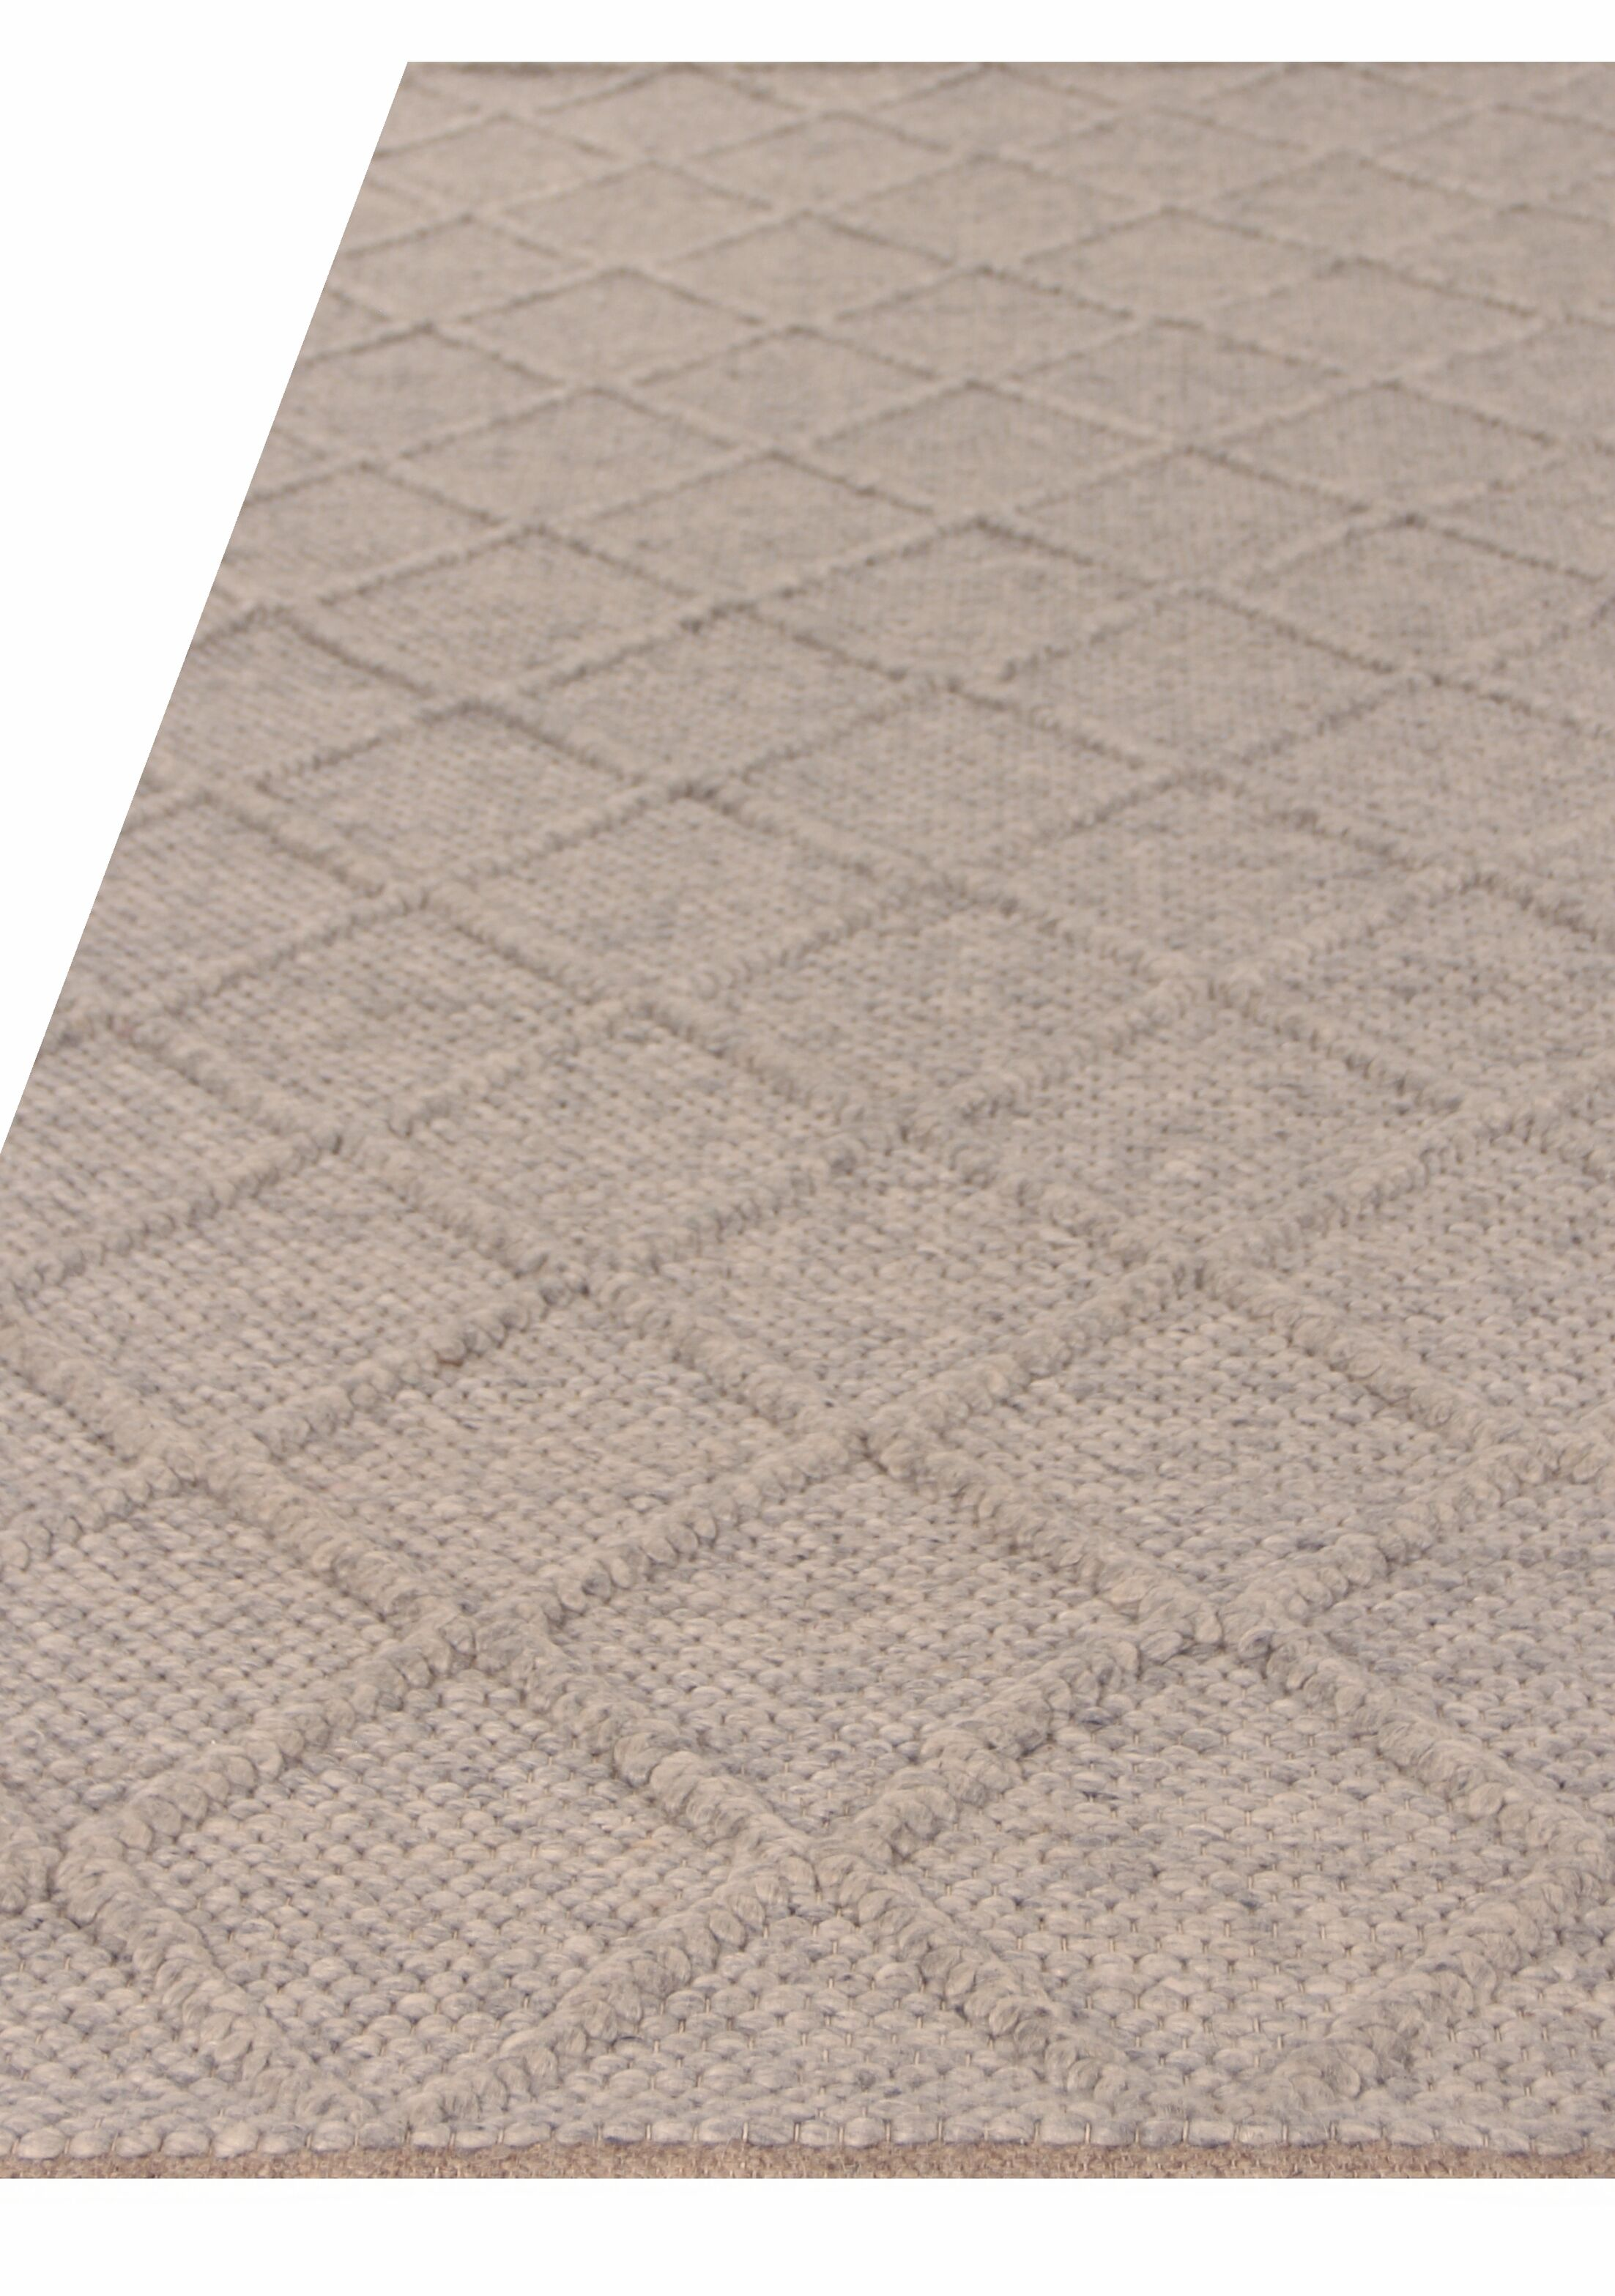 Brentwood Hand Woven Wool Gray Area Rug Rug Size: Rectangle 8' x 10'